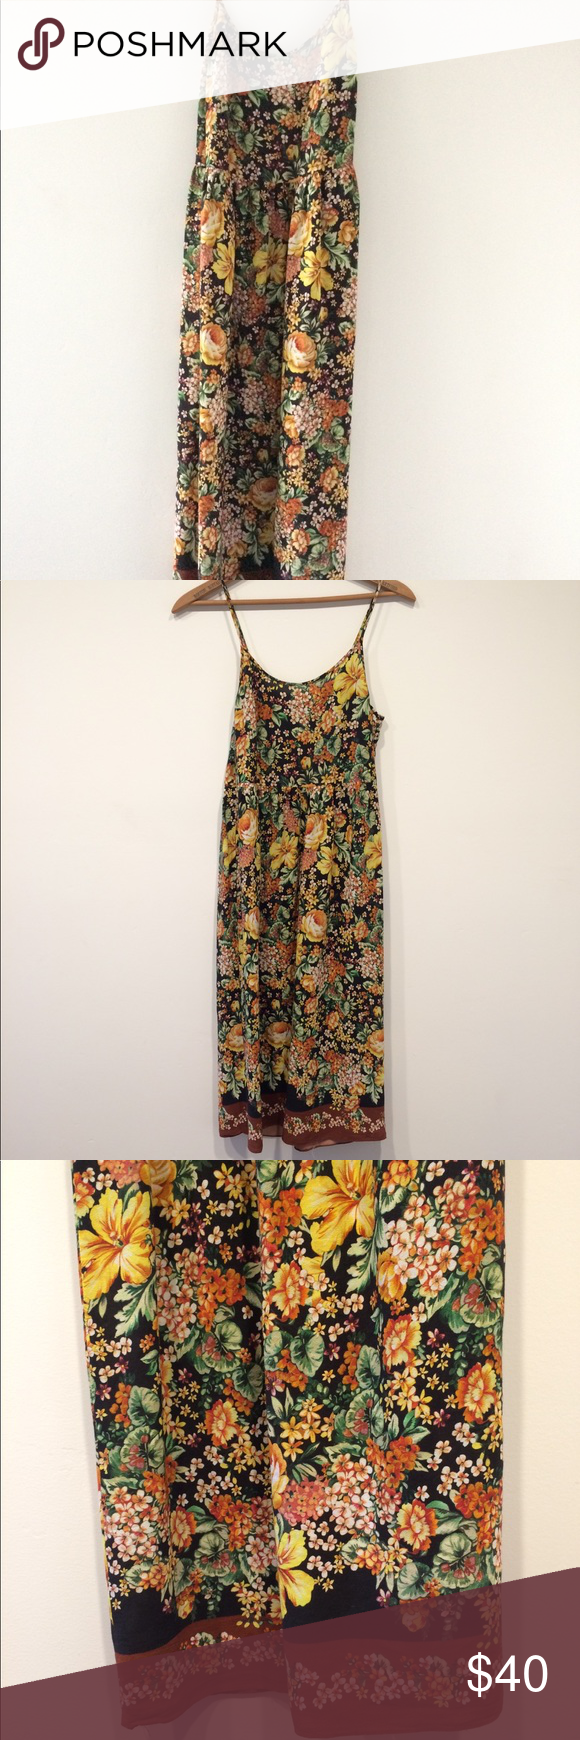 a9121dd5ca6 Zara Floral Maxi Dress In excellent condition! Worn only a few times. Very  beautiful and vibrant floral print. XS but can fit a couples size up  comfortably ...